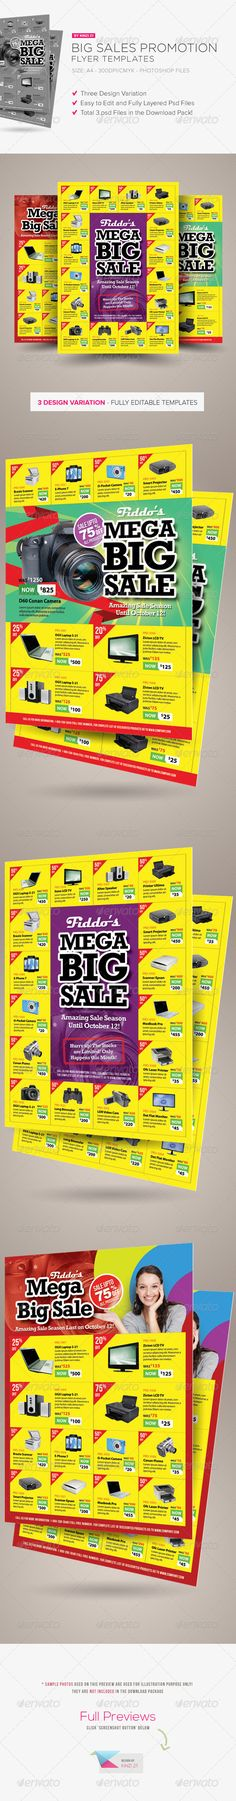 Big Sale Promotion Flyers — Photoshop PSD #promotion #sale • Available here → https://graphicriver.net/item/big-sale-promotion-flyers/5595976?ref=pxcr